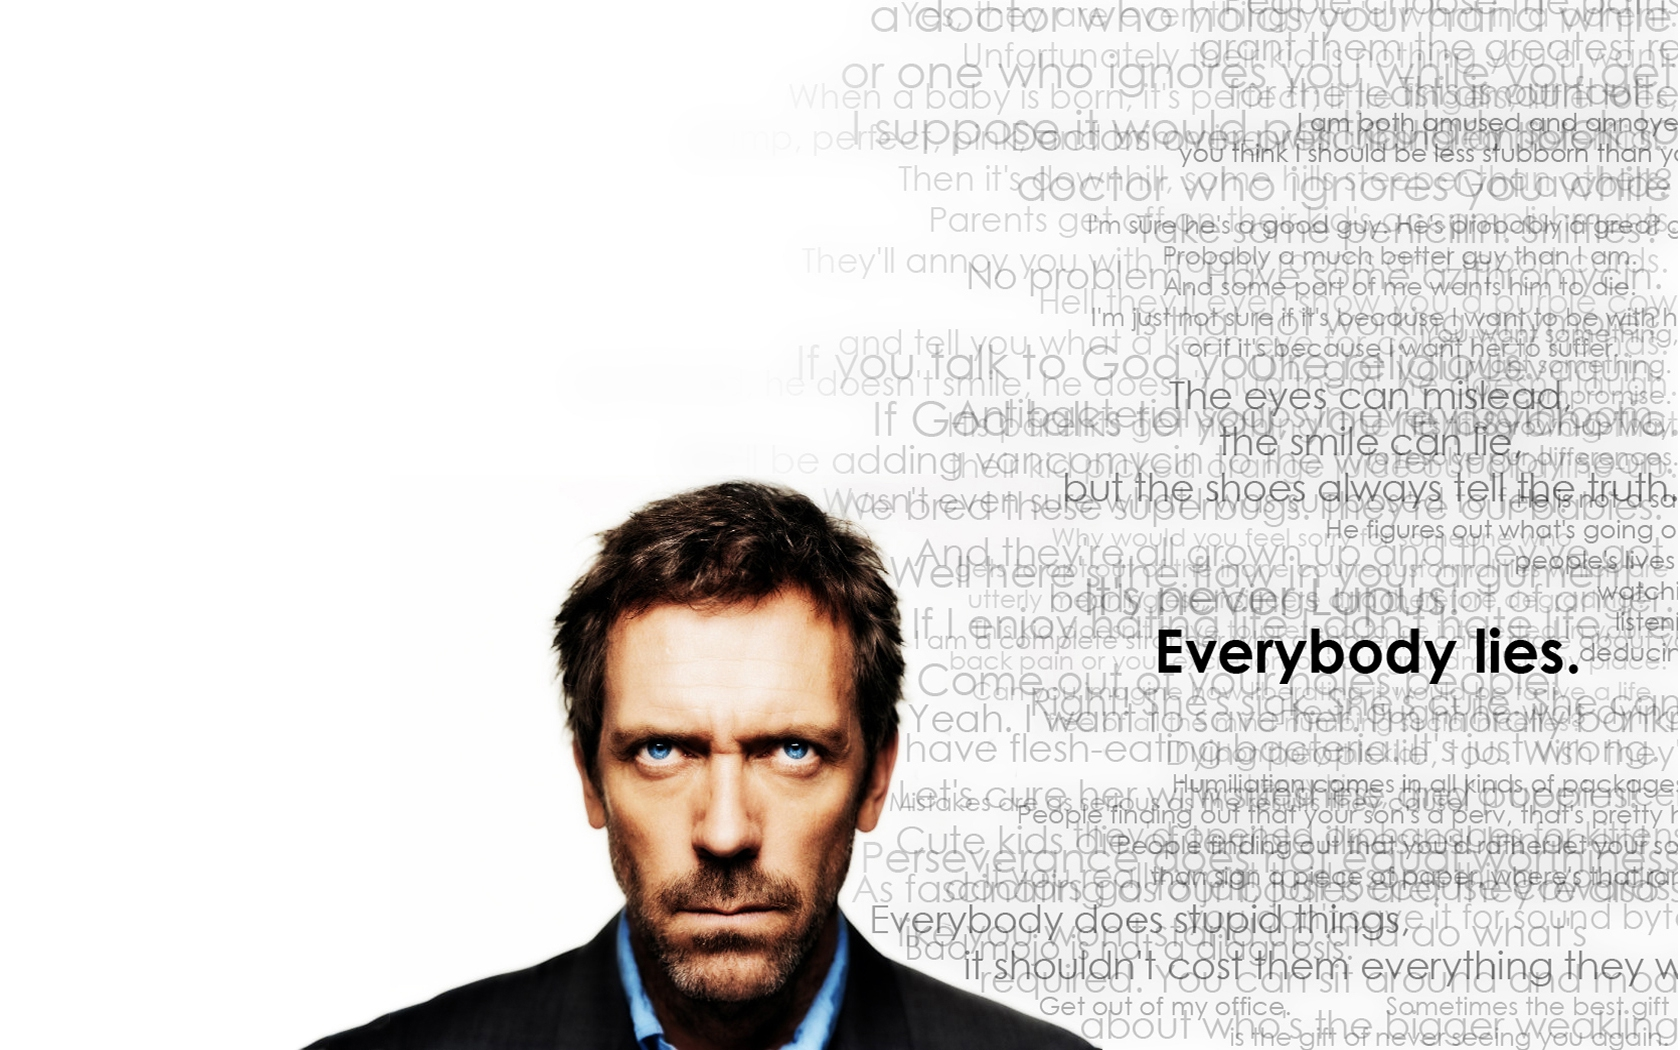 Alchemist Quotes Wallpaper Quotes Dr House Hugh Laurie Everybody Lies Gregory House